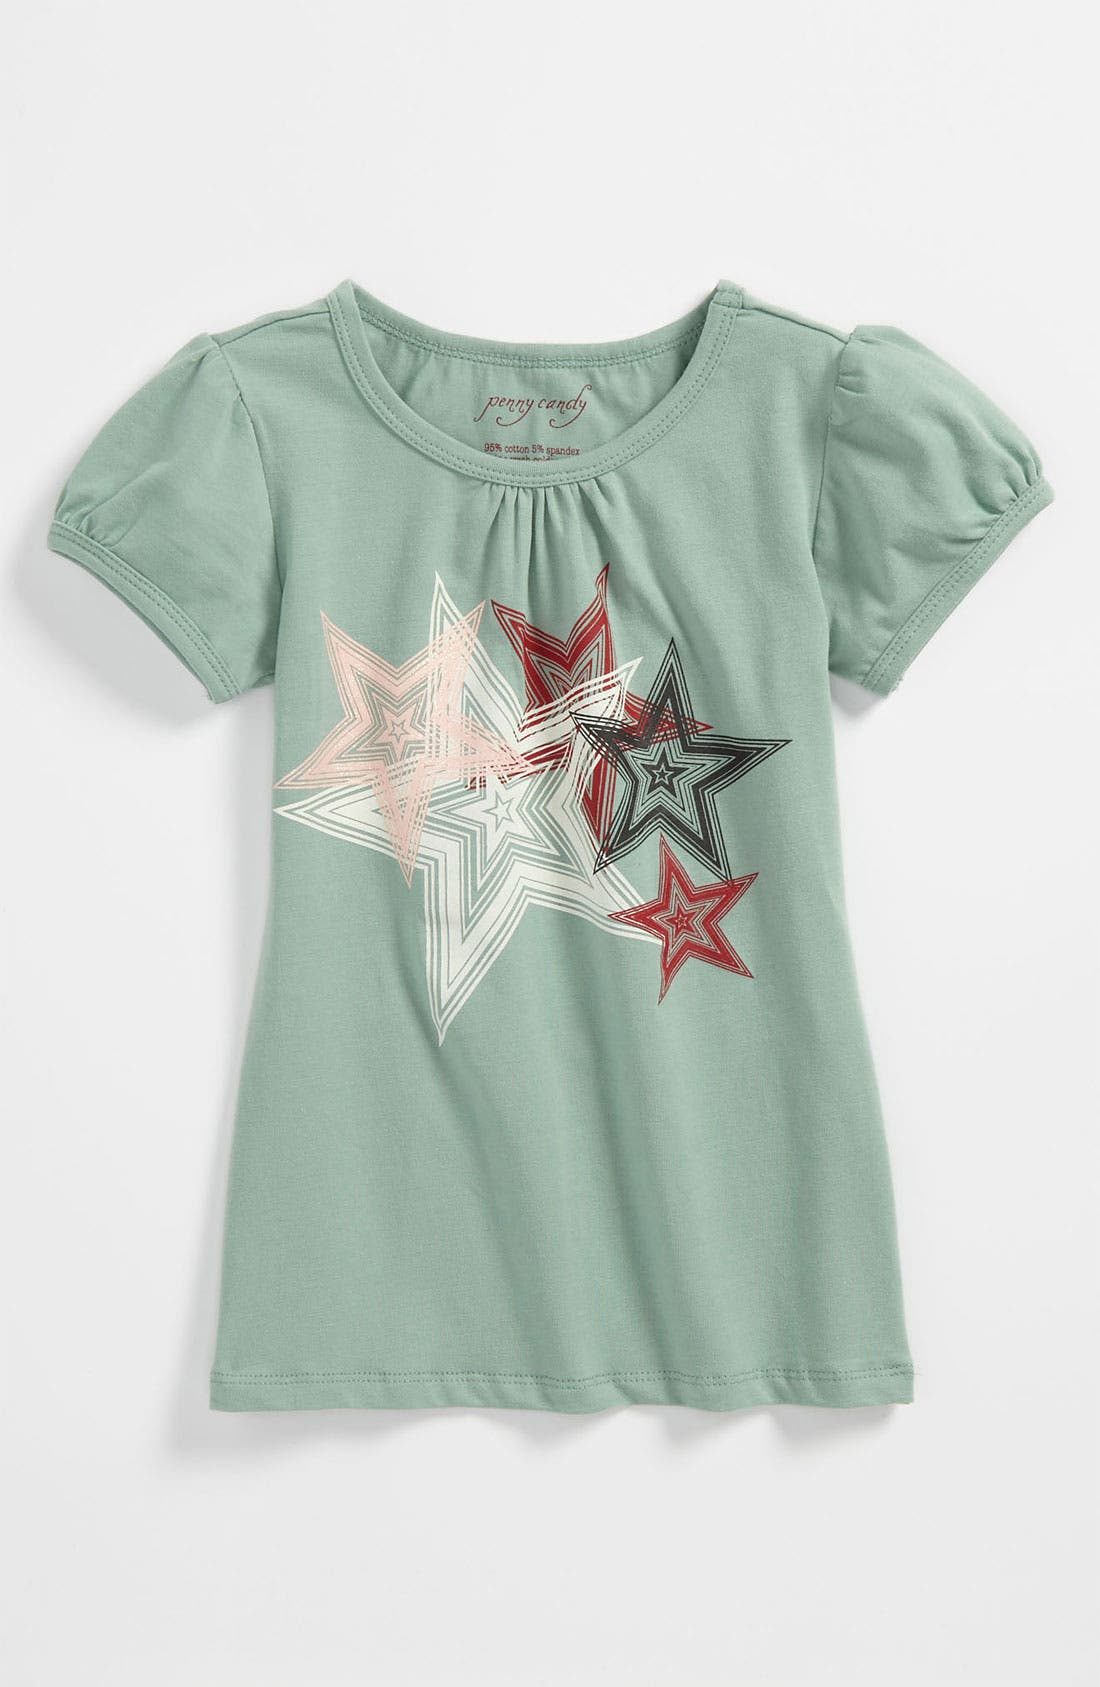 Main Image - Penny Candy 'Jane' Tee (Little Girls & Big Girls)